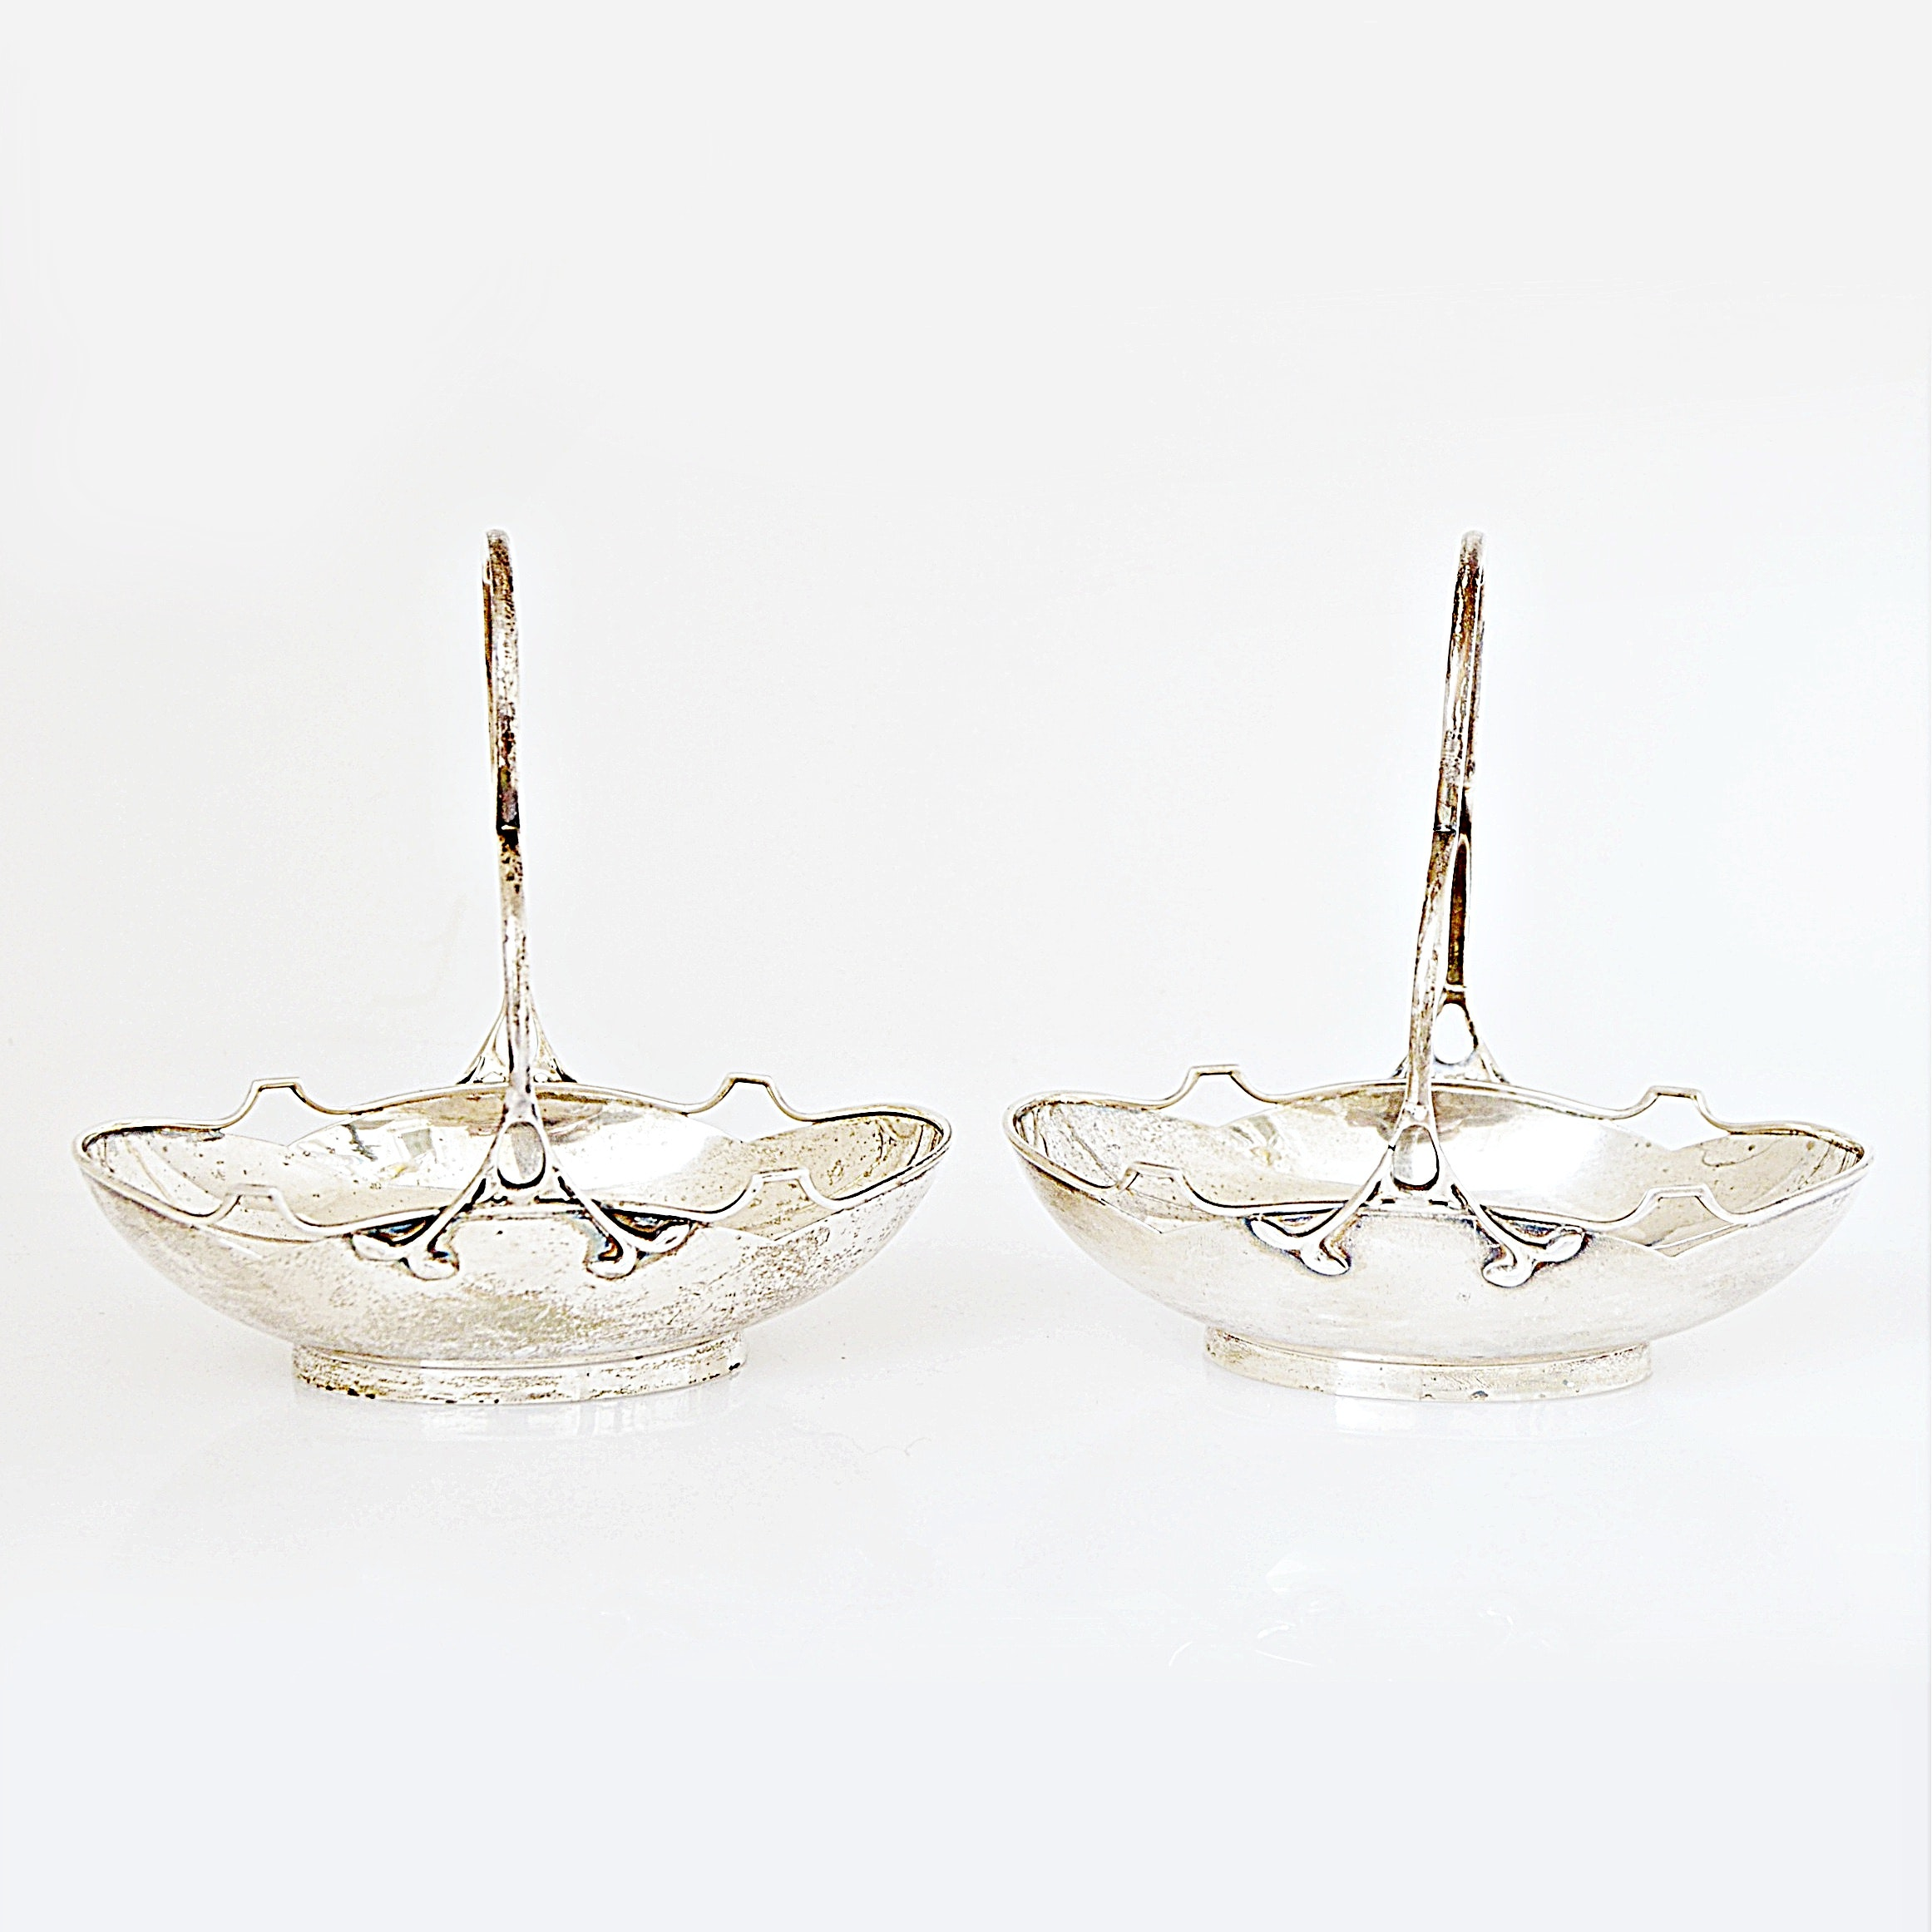 1910 E. S. Barnsley & Co. Sterling Silver Basket Dishes